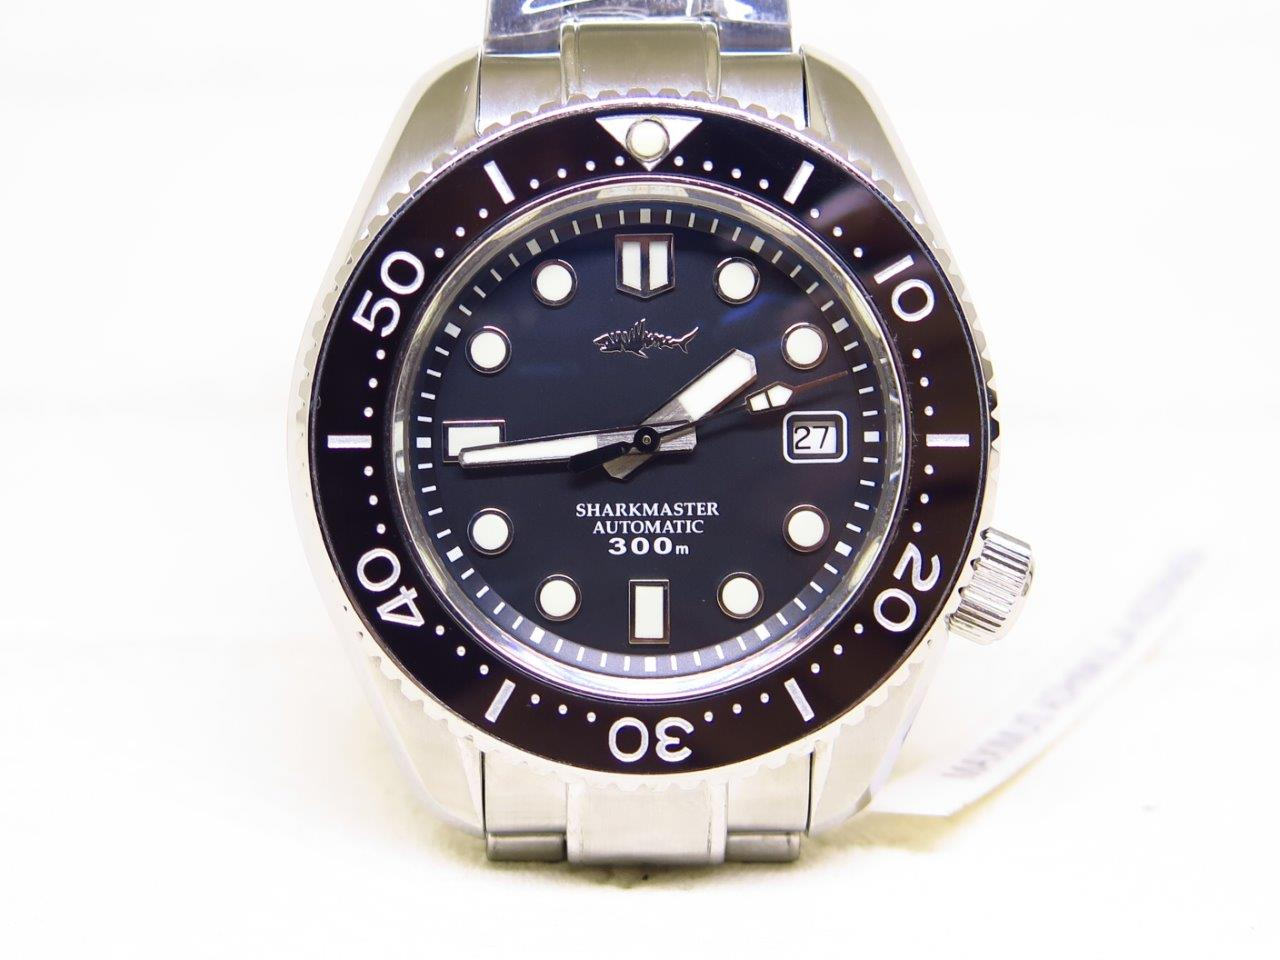 SHARK MASTER 300M - AUTOMATIC